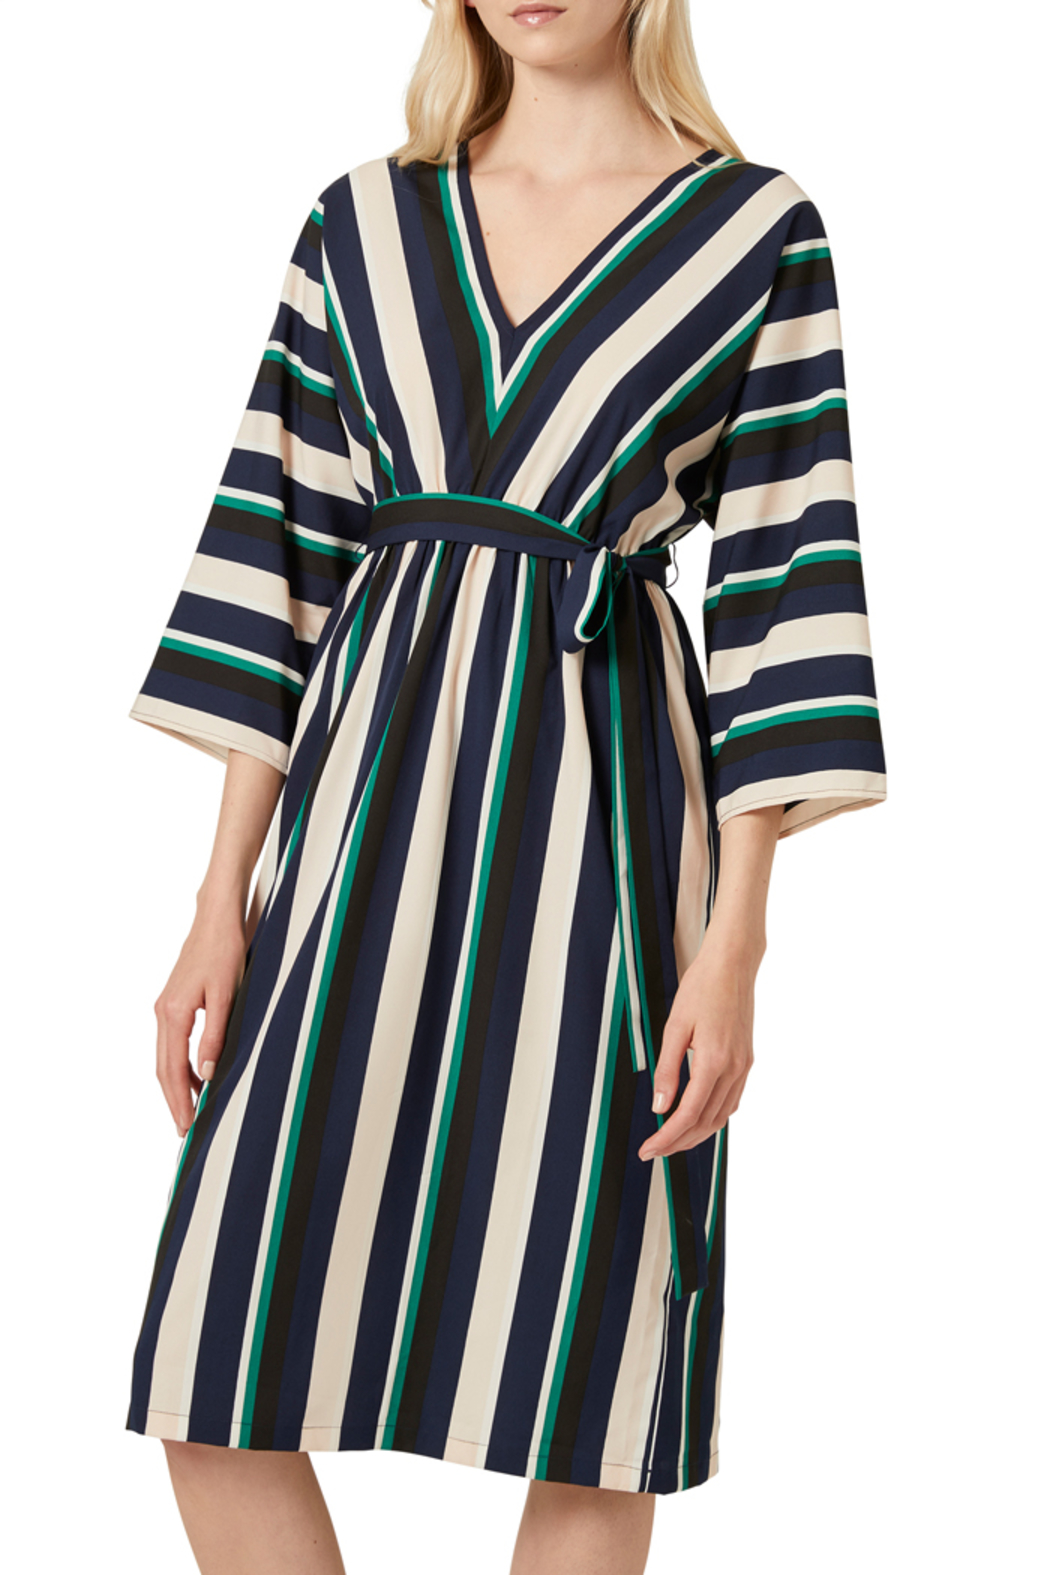 French Connection MULTI STRIPE BELTED DRESS - Front Full Image